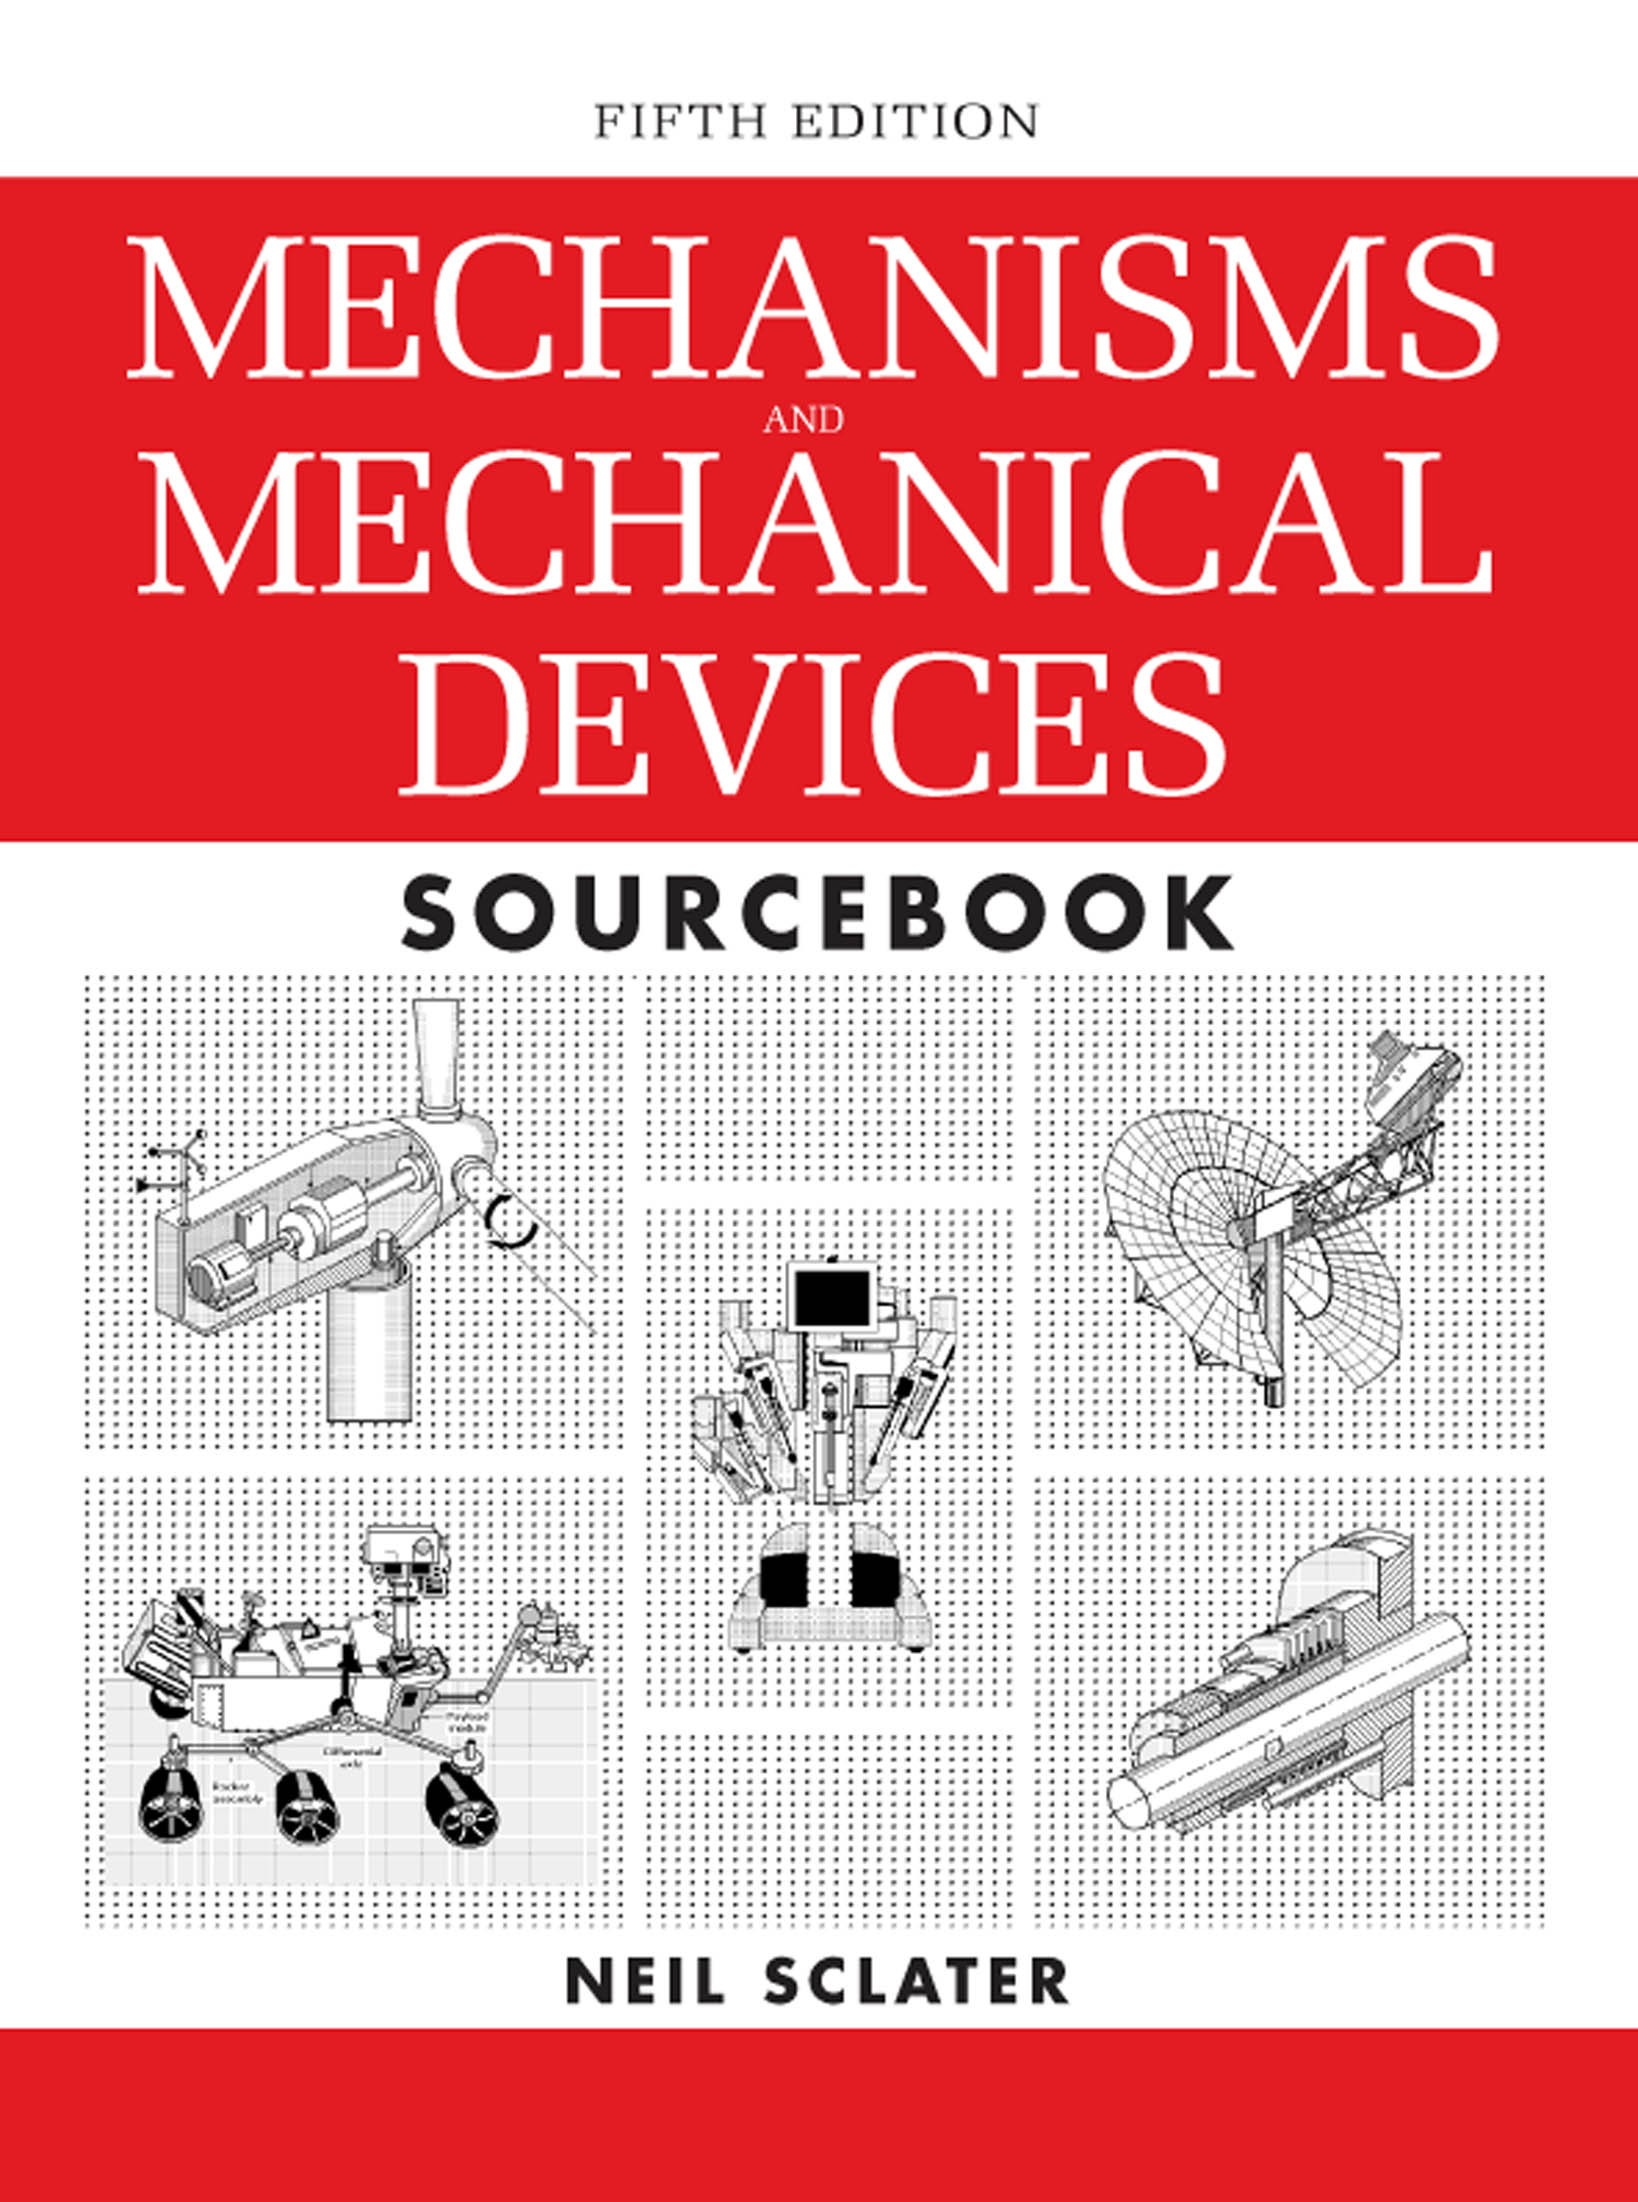 Mechanisms-and-Mechanical-Devices-Neil-Scalter-PDF